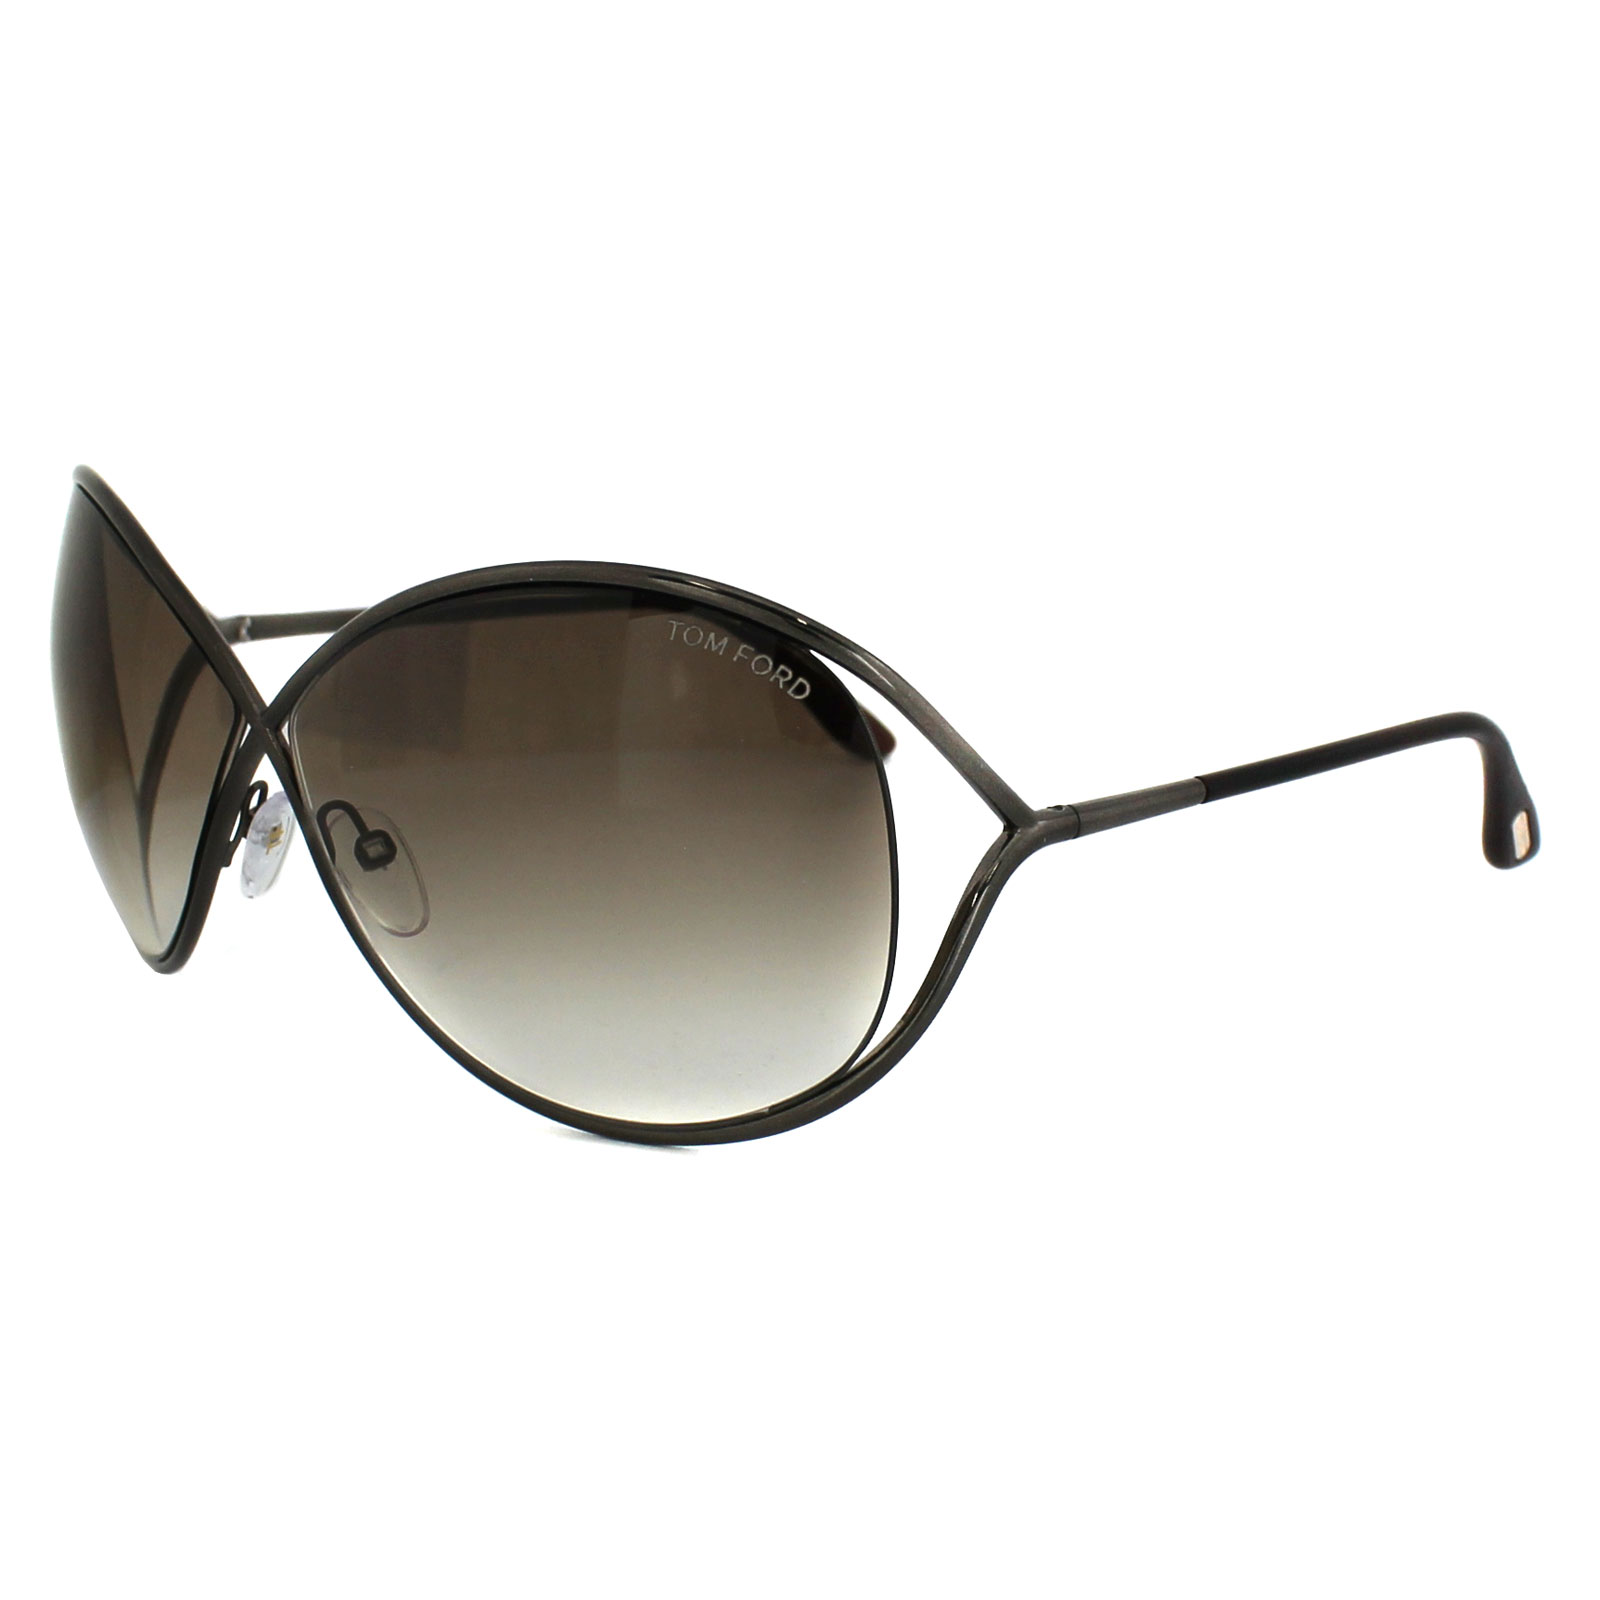 tom ford sunglasses 0130 miranda 36f shiny dark bronze brown gradient. Cars Review. Best American Auto & Cars Review